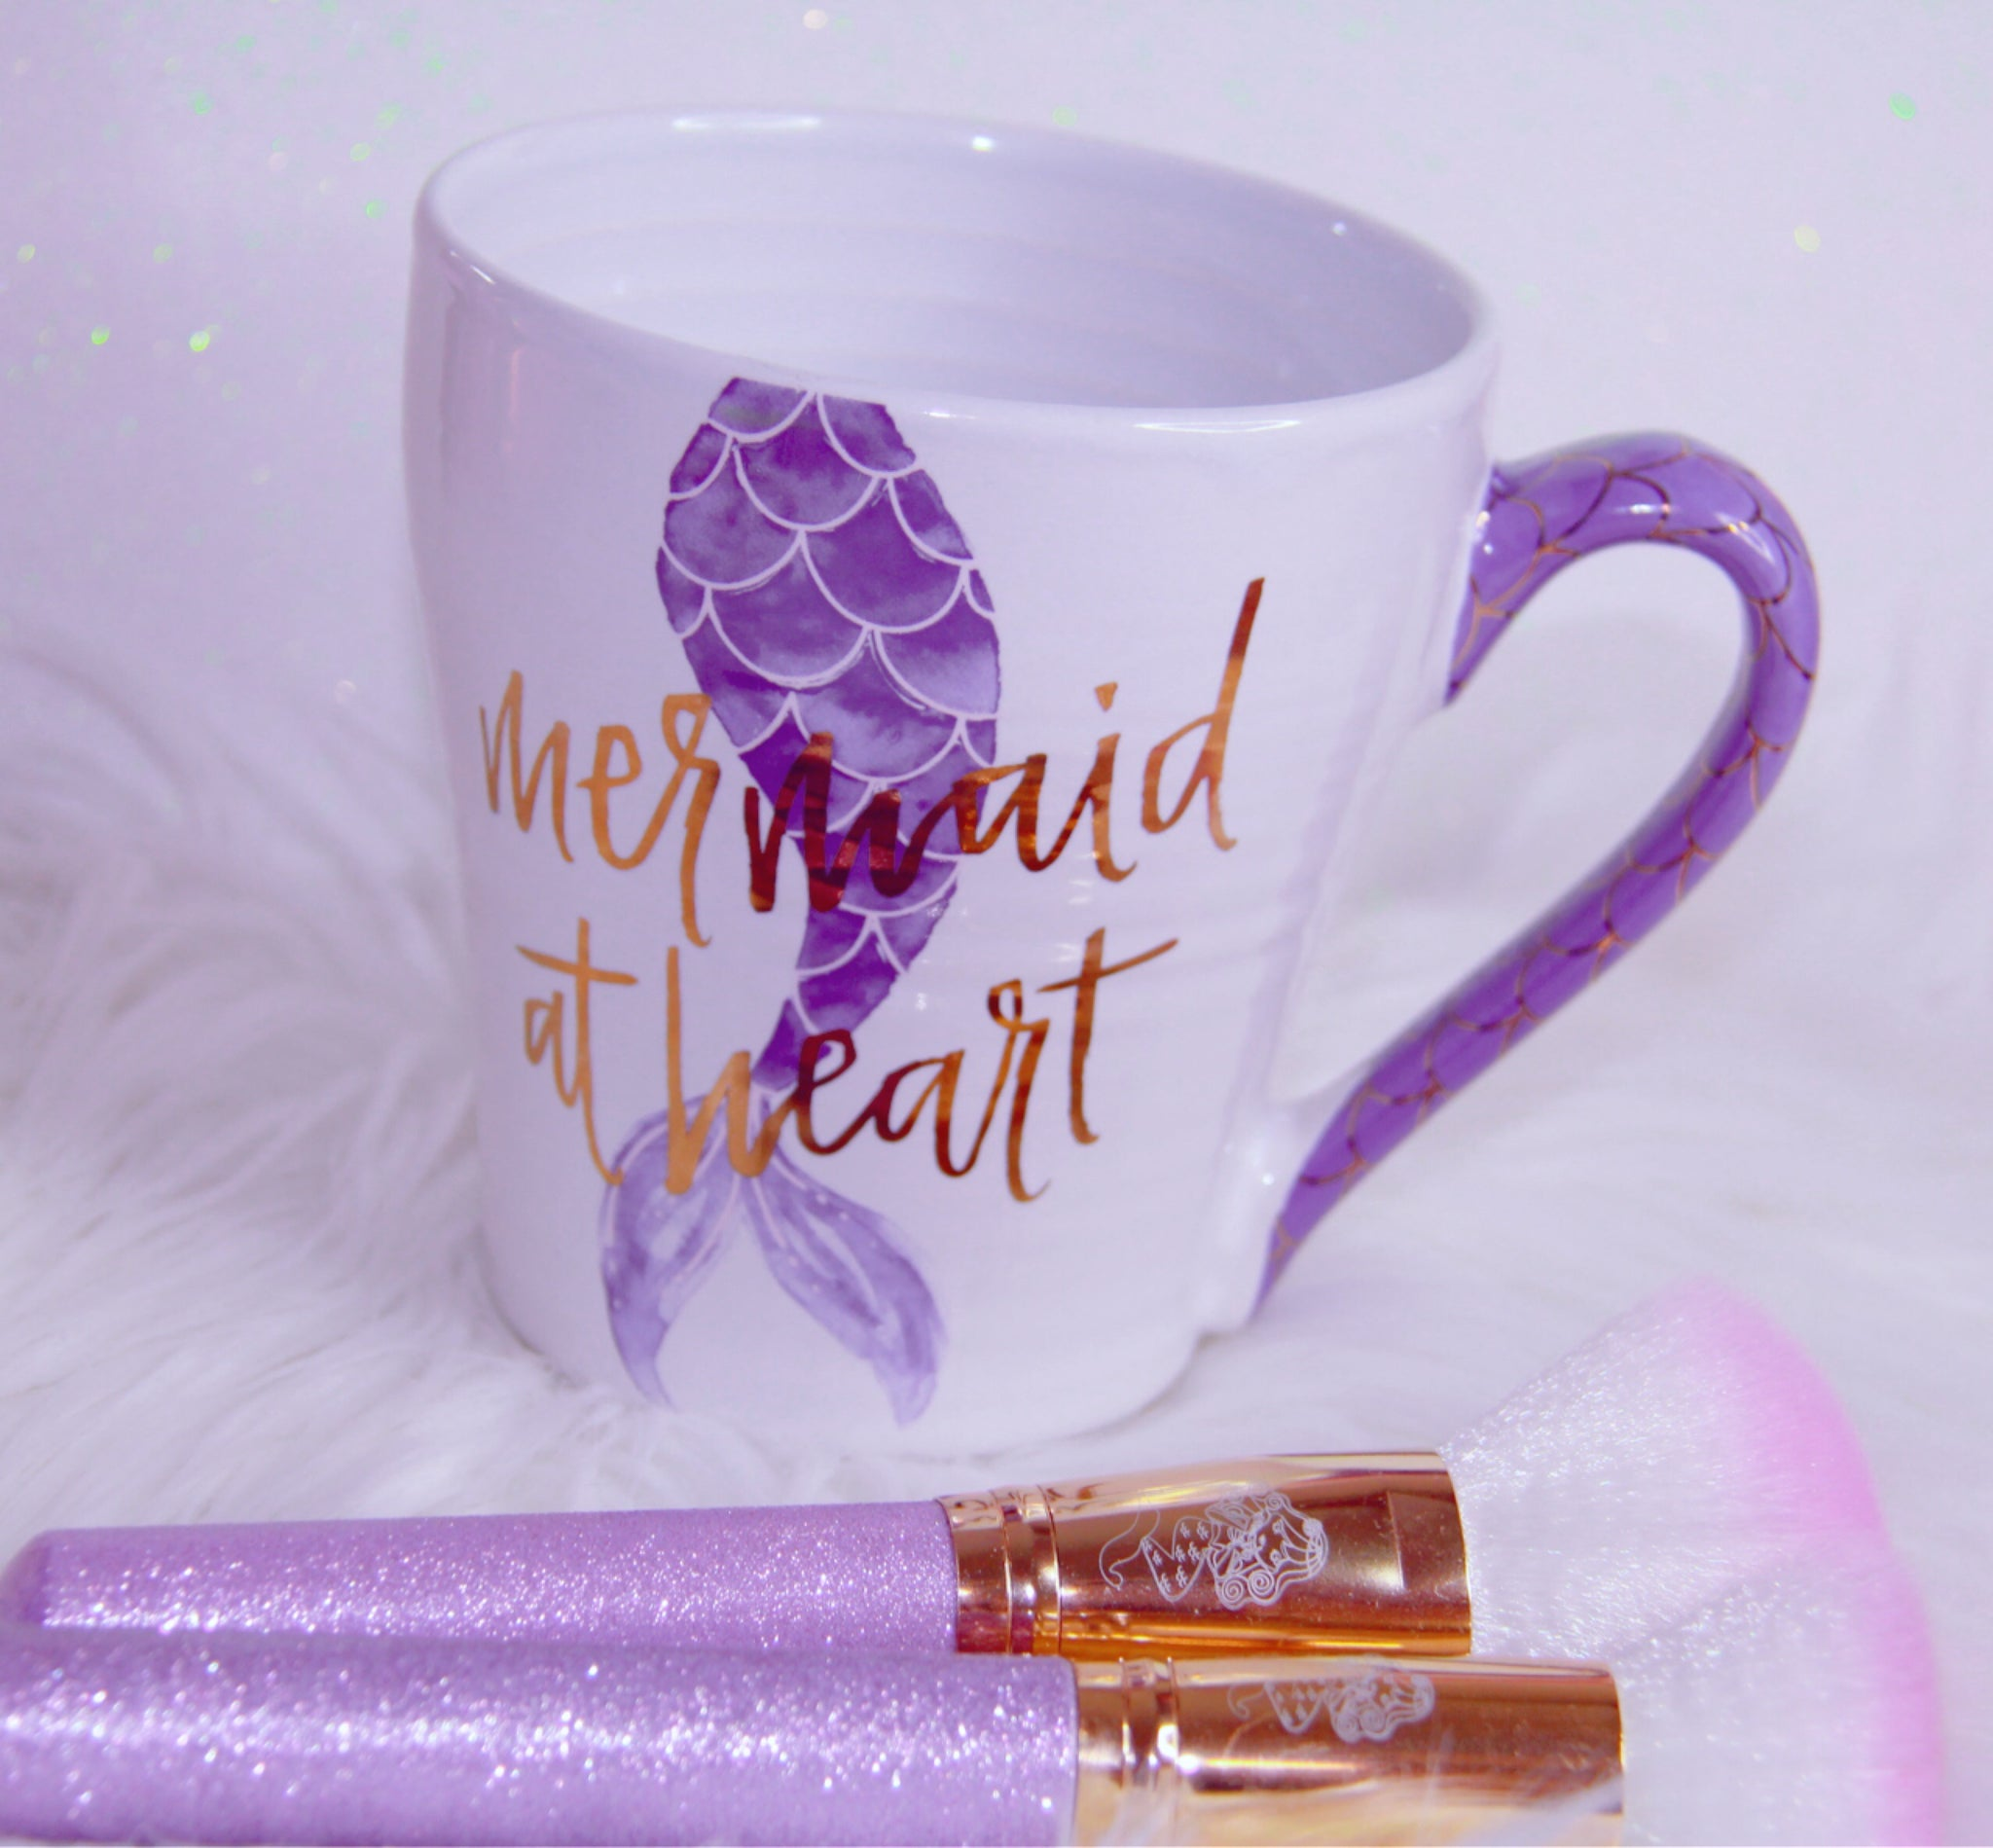 Mermaid at Heart tail purple mug